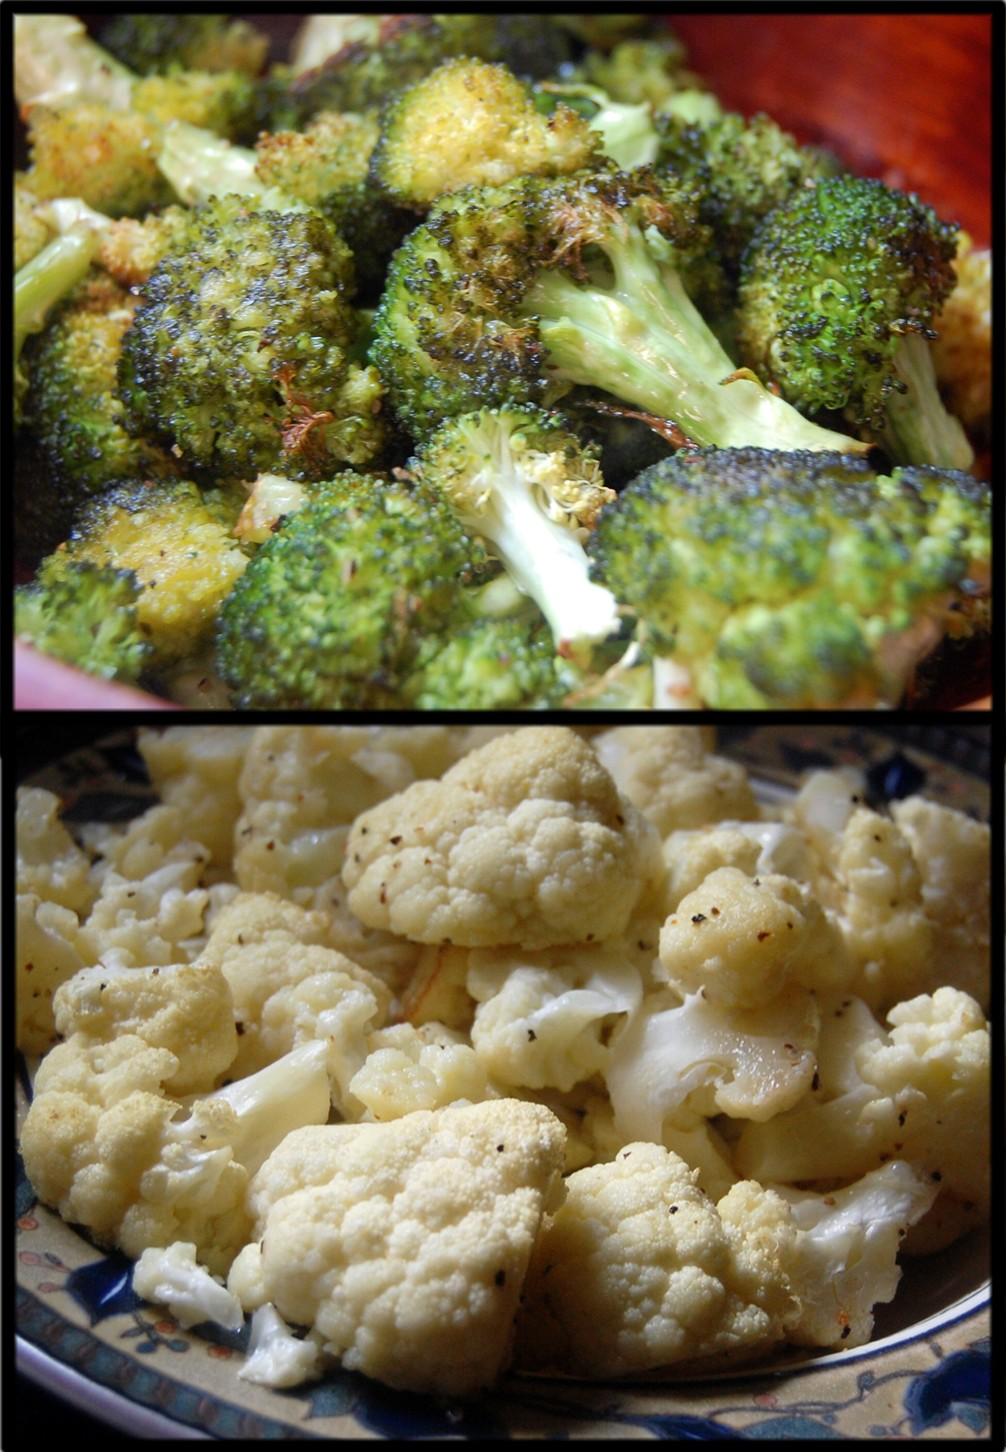 Roasted Broccoli or Cauliflower